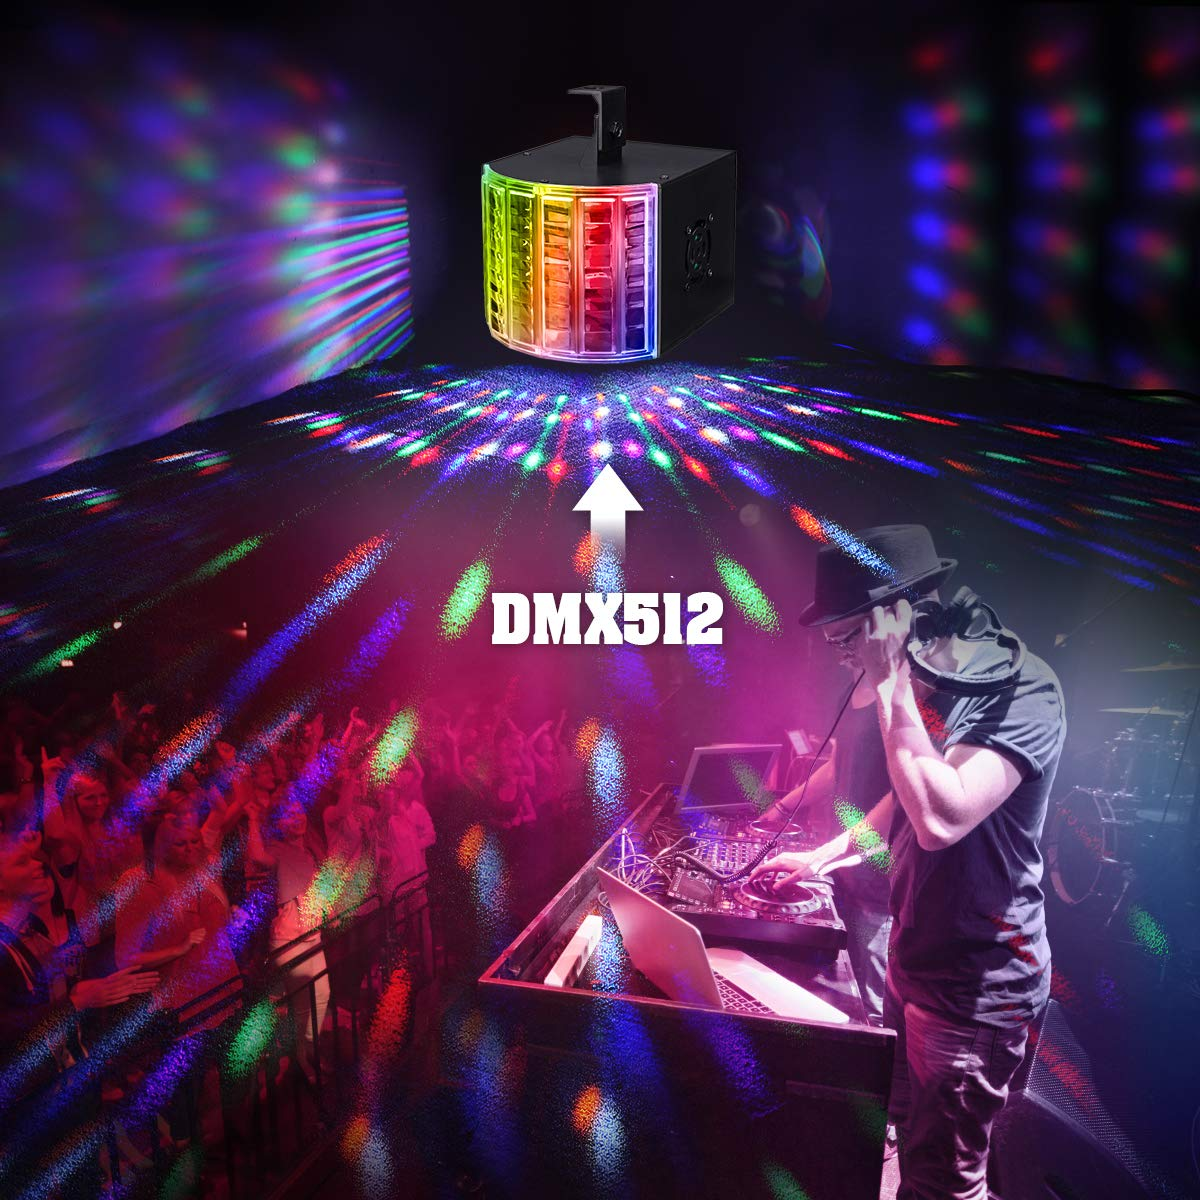 DJ Lights, SOLMORE Party Lights DMX512 Sound Actived Stage Disco Lights with Remote Control for Dance Parties Bar Karaoke Xmas Wedding Show Club 18W by SOLMORE (Image #3)